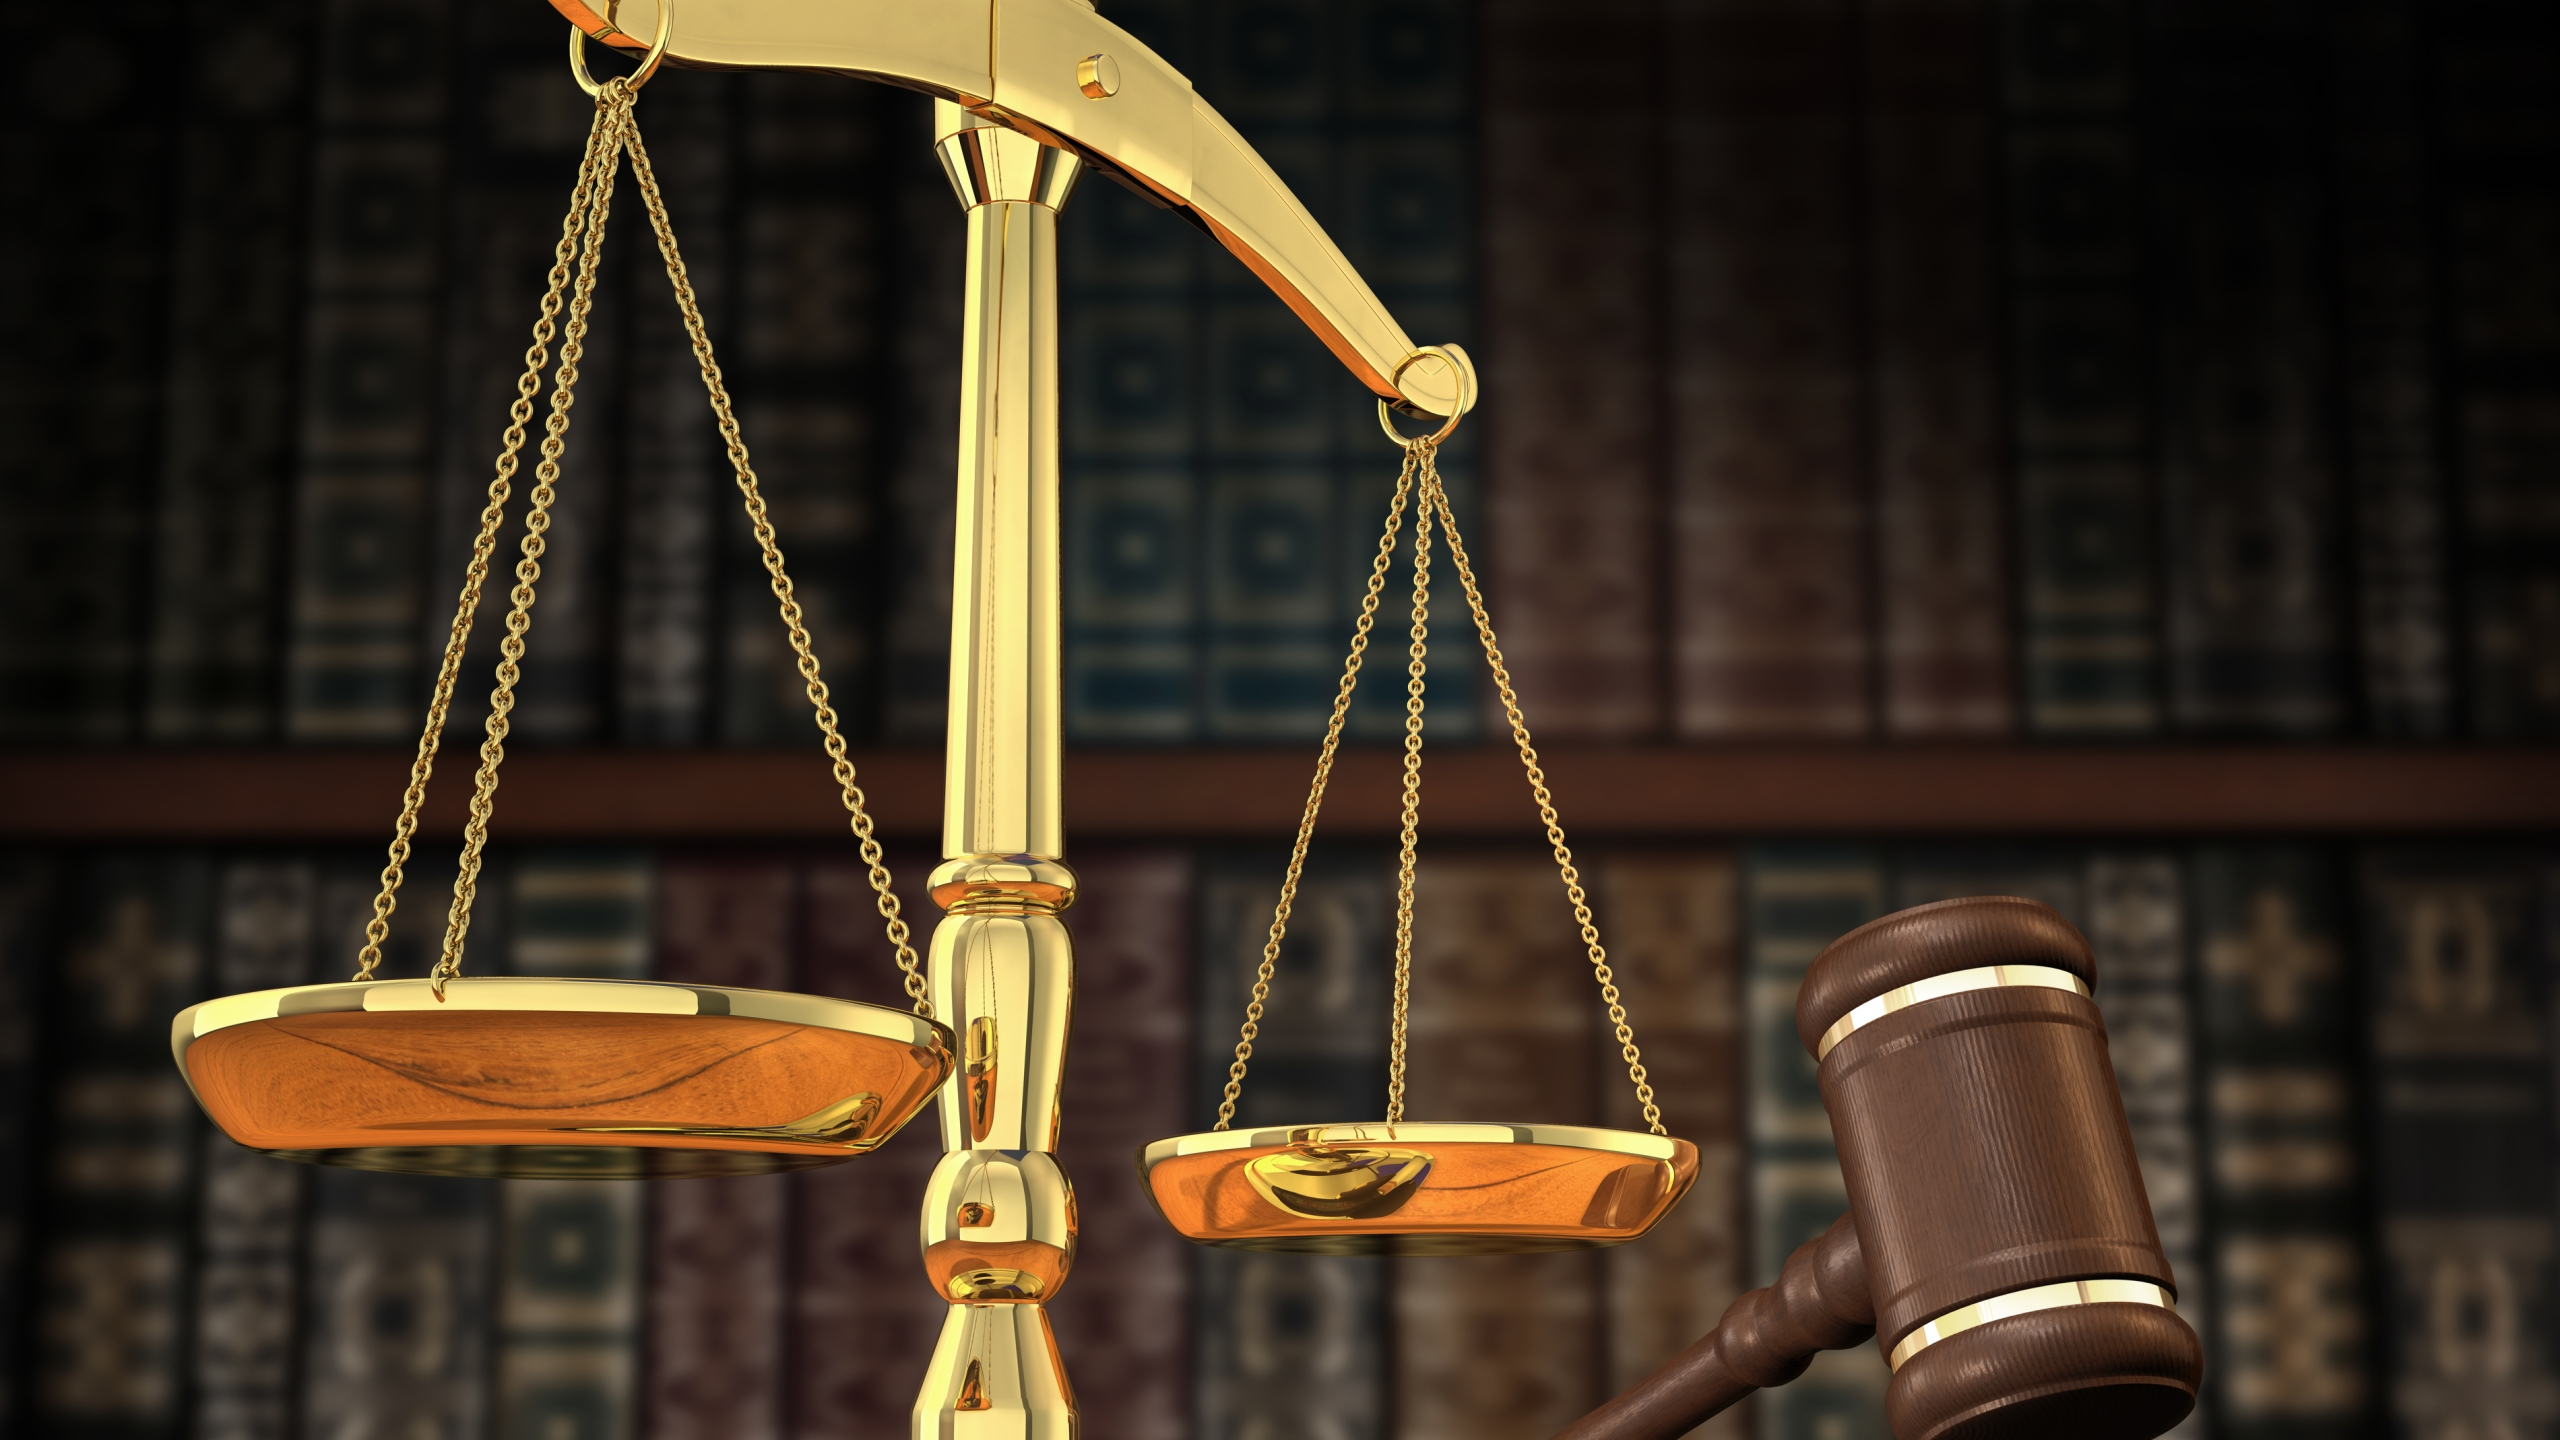 Scales of Justice Gavel Law Legal Court